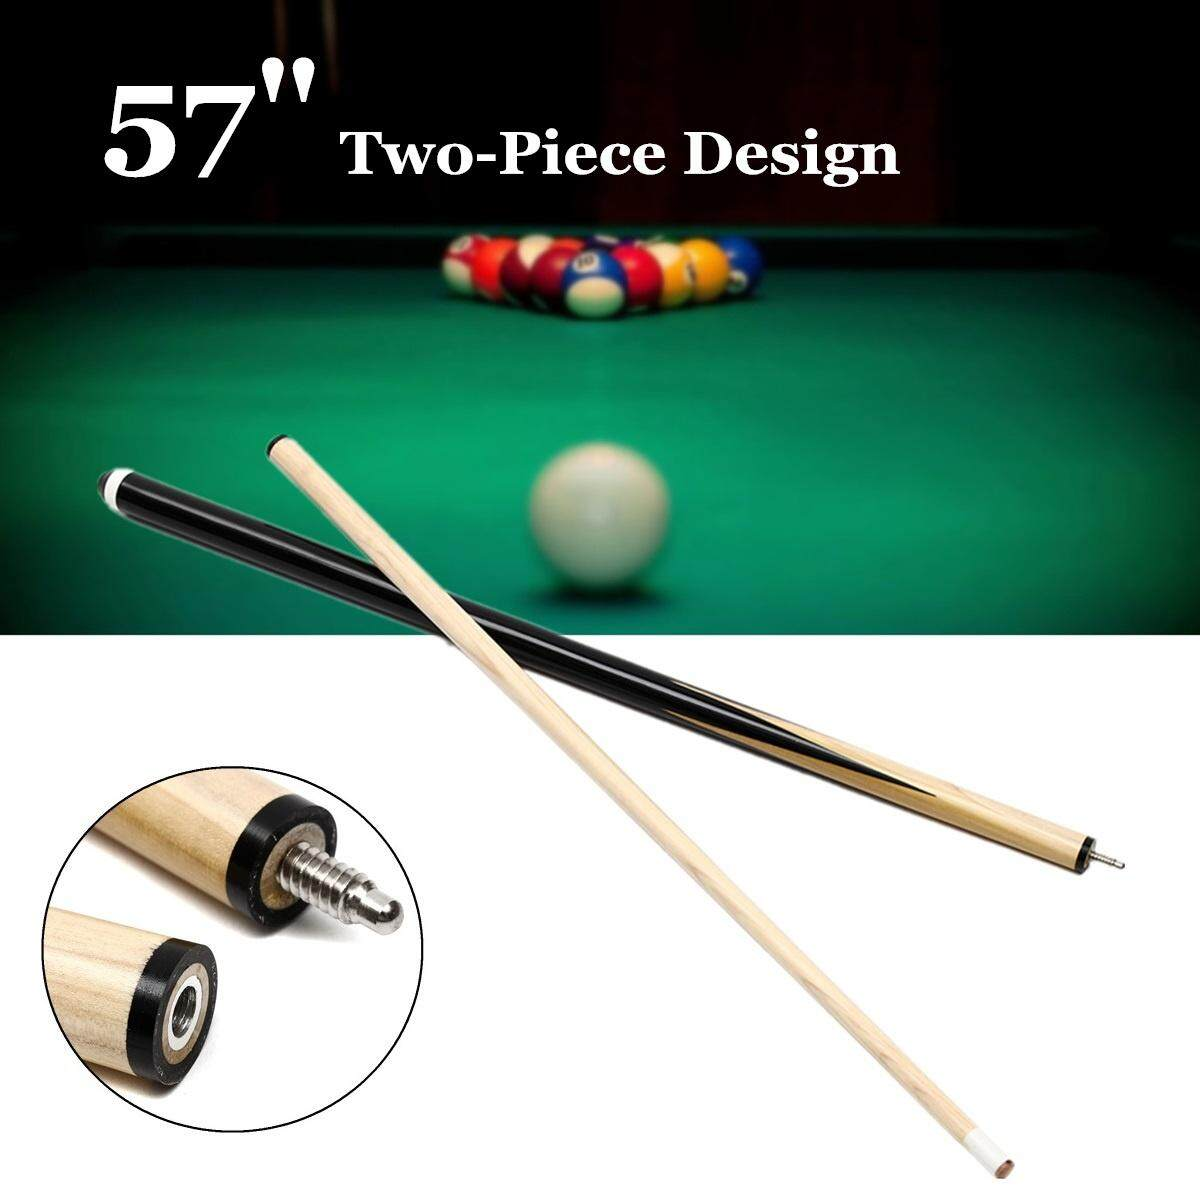 57 2-Piece 1/2 Eco Pool Jointed Snooker Cue Stick For Billiards Game Sport By Ferry